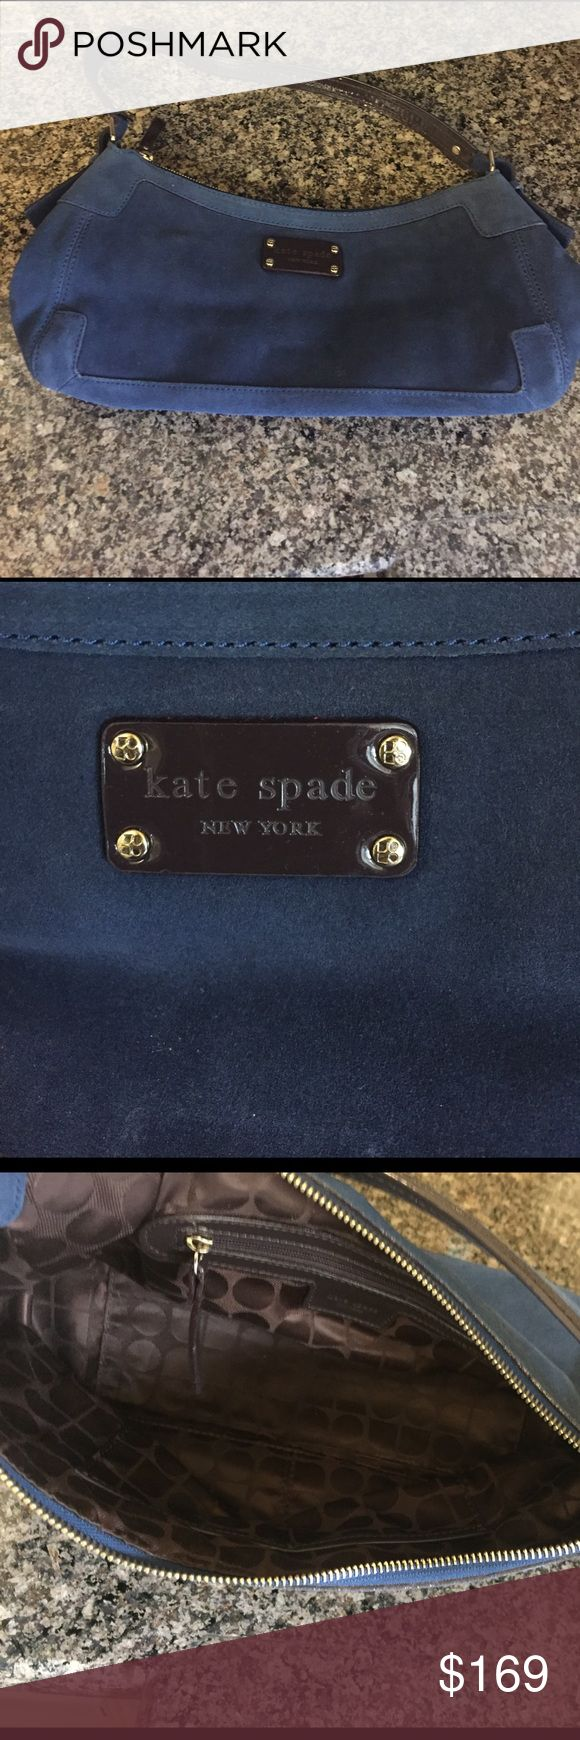 Kate Spade Navy Purse Kate Spade Navy Purse. It's absolutely beautiful. It's a navy suede Kate Spade Purse.  It does show a little wear and has a defect that can be seen in pictures. Priced to sell quickly. . kate spade Bags